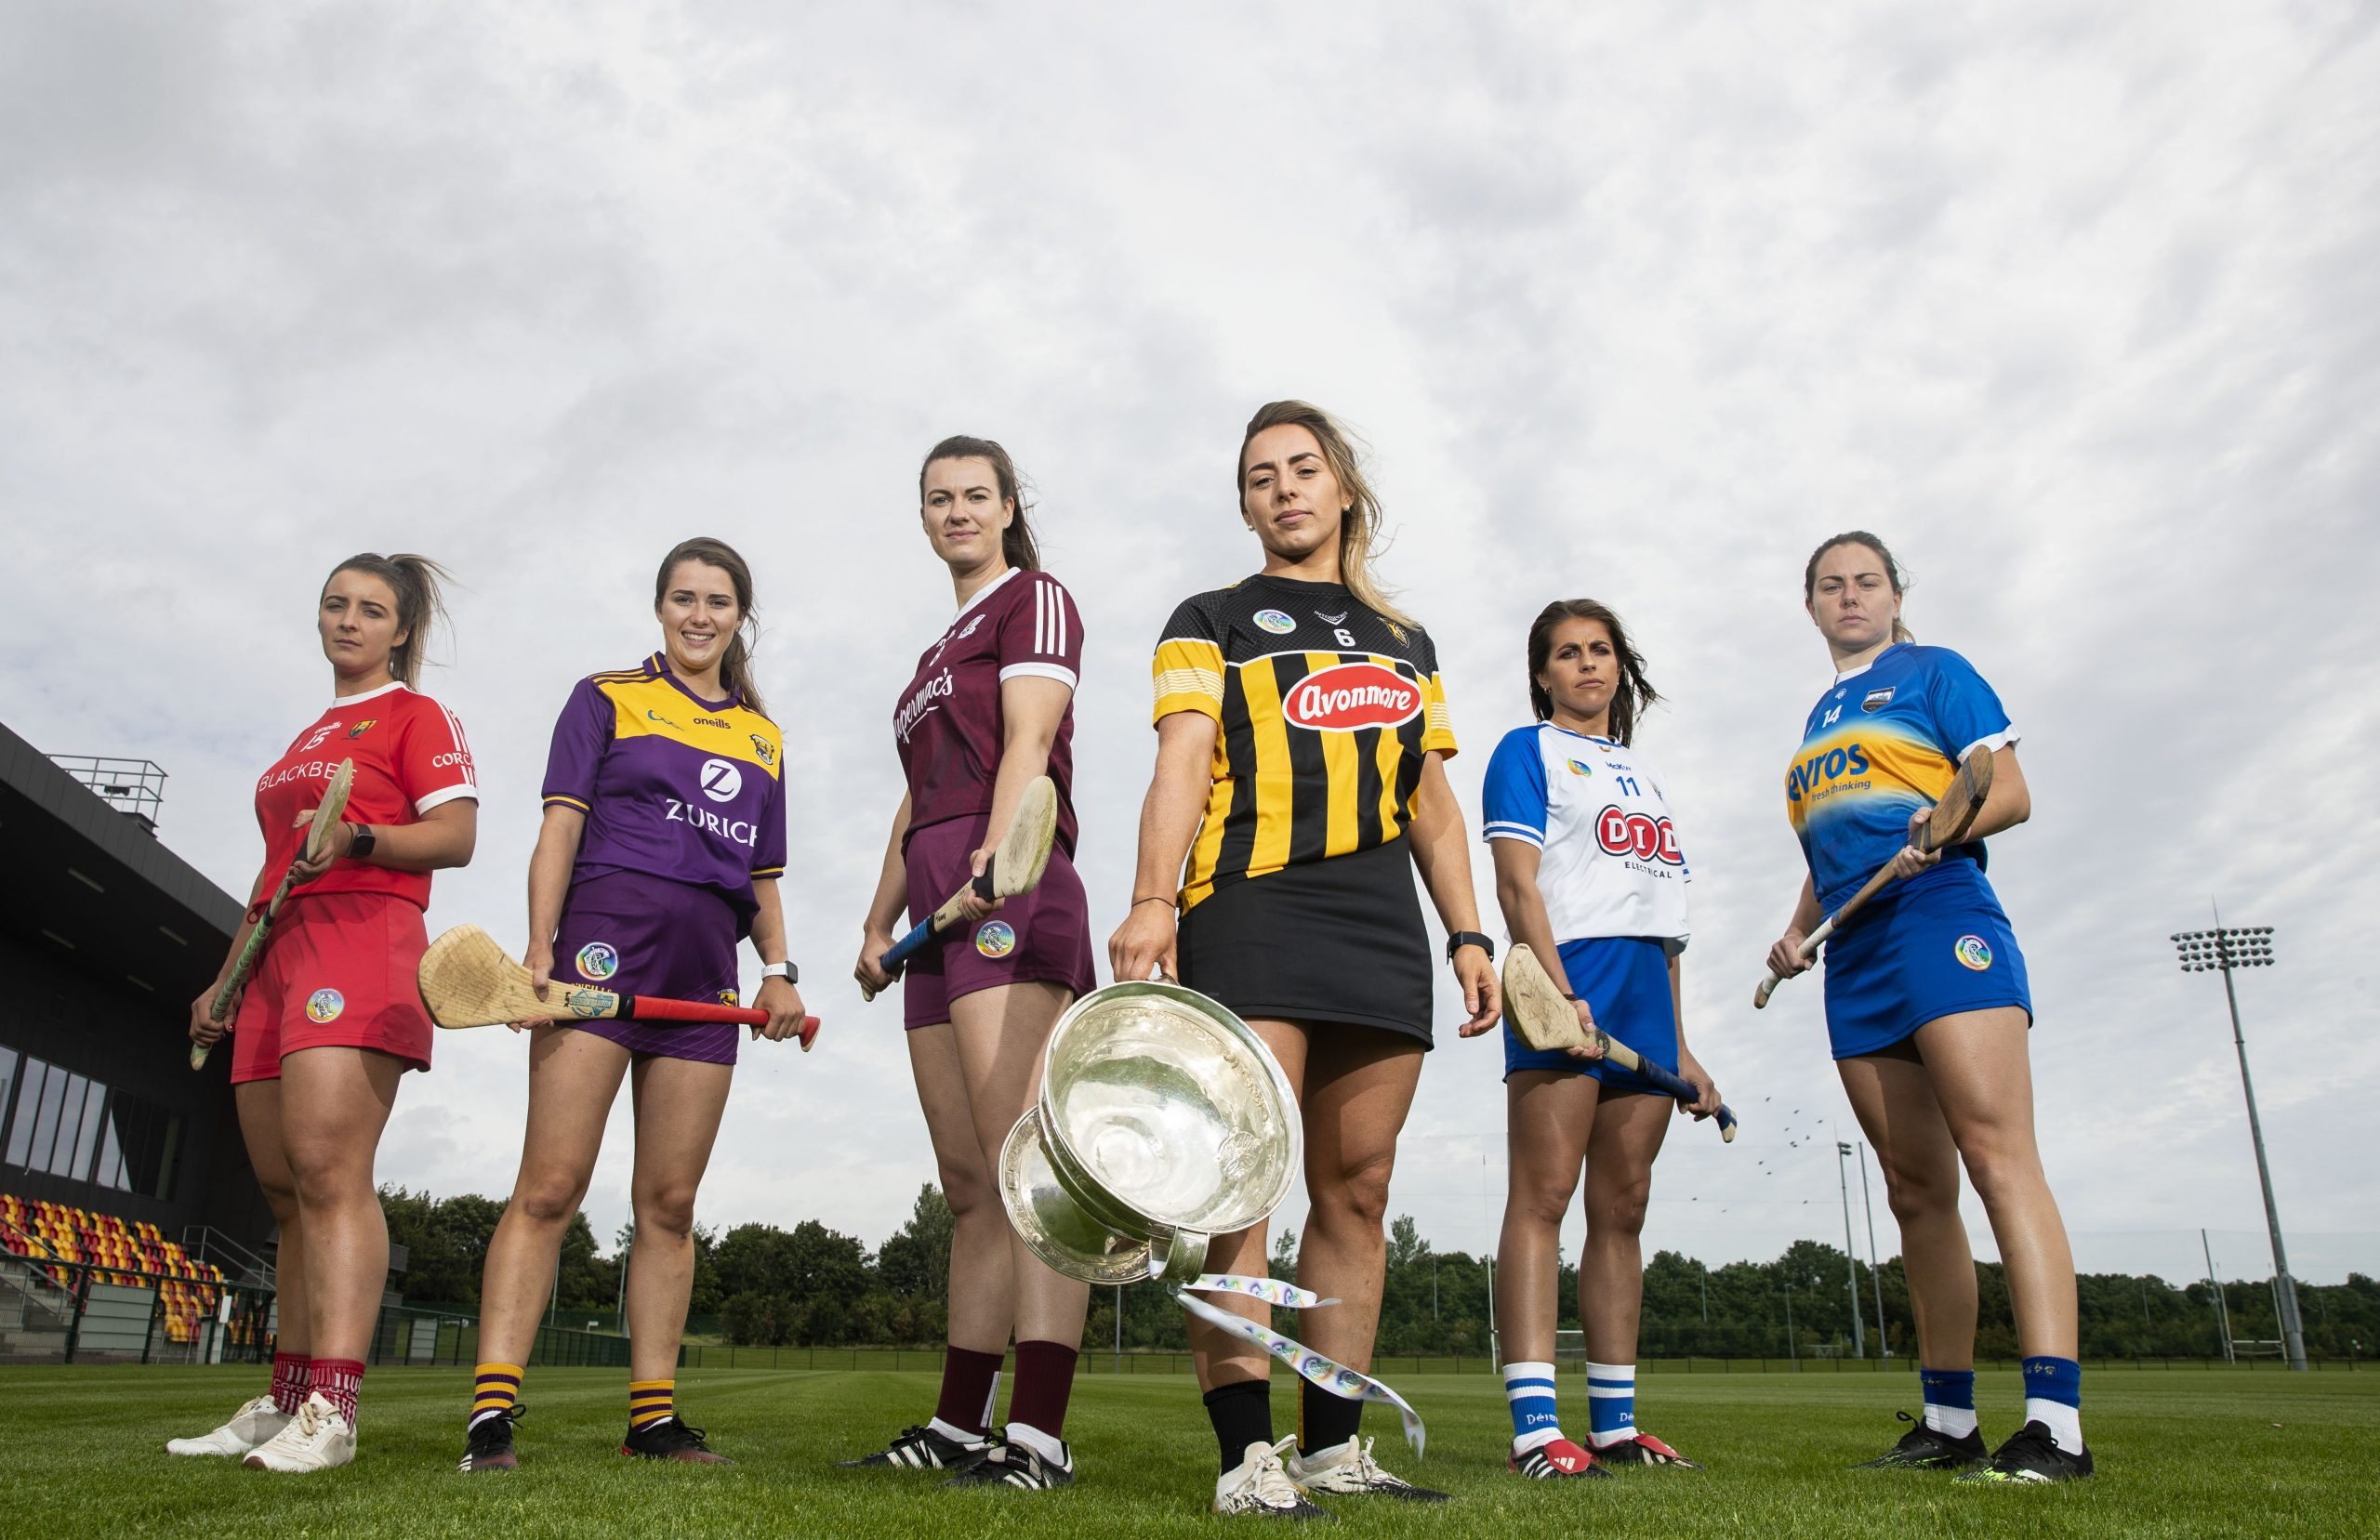 FIXTURES: All-Ireland Camogie Championships, August 21st & 22nd